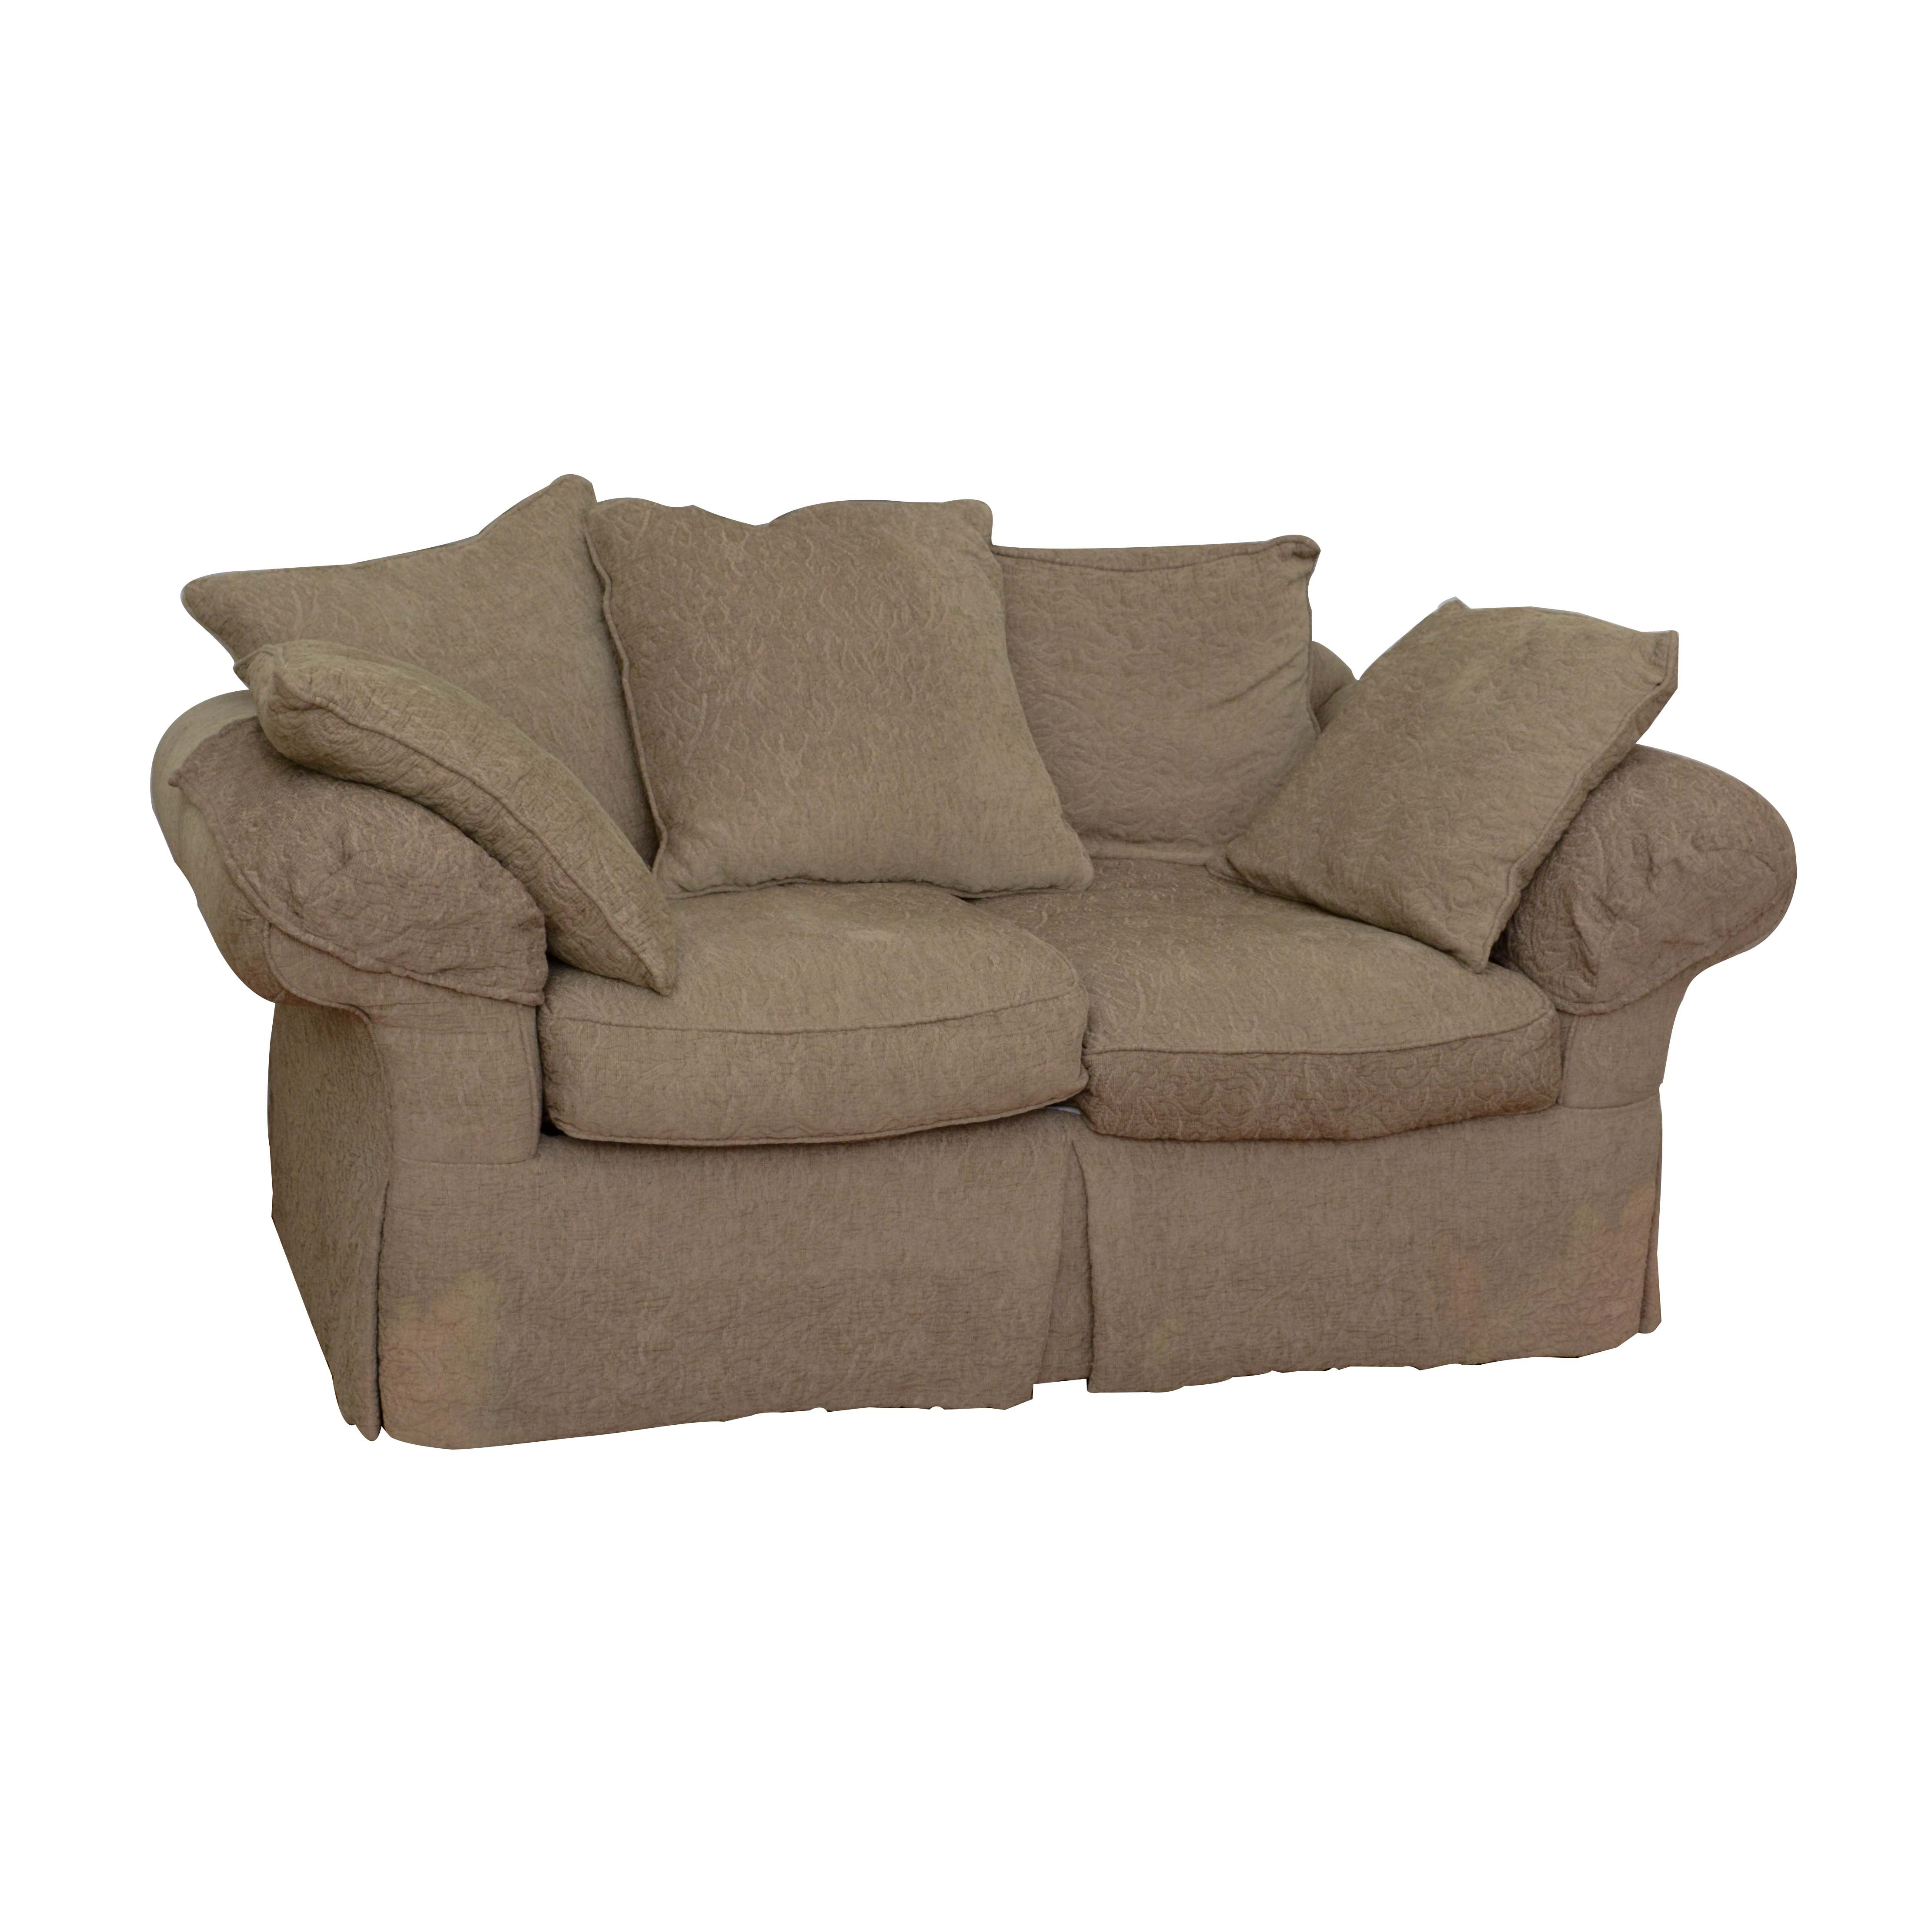 Upholstered Loveseat by Domain Home Furnishings